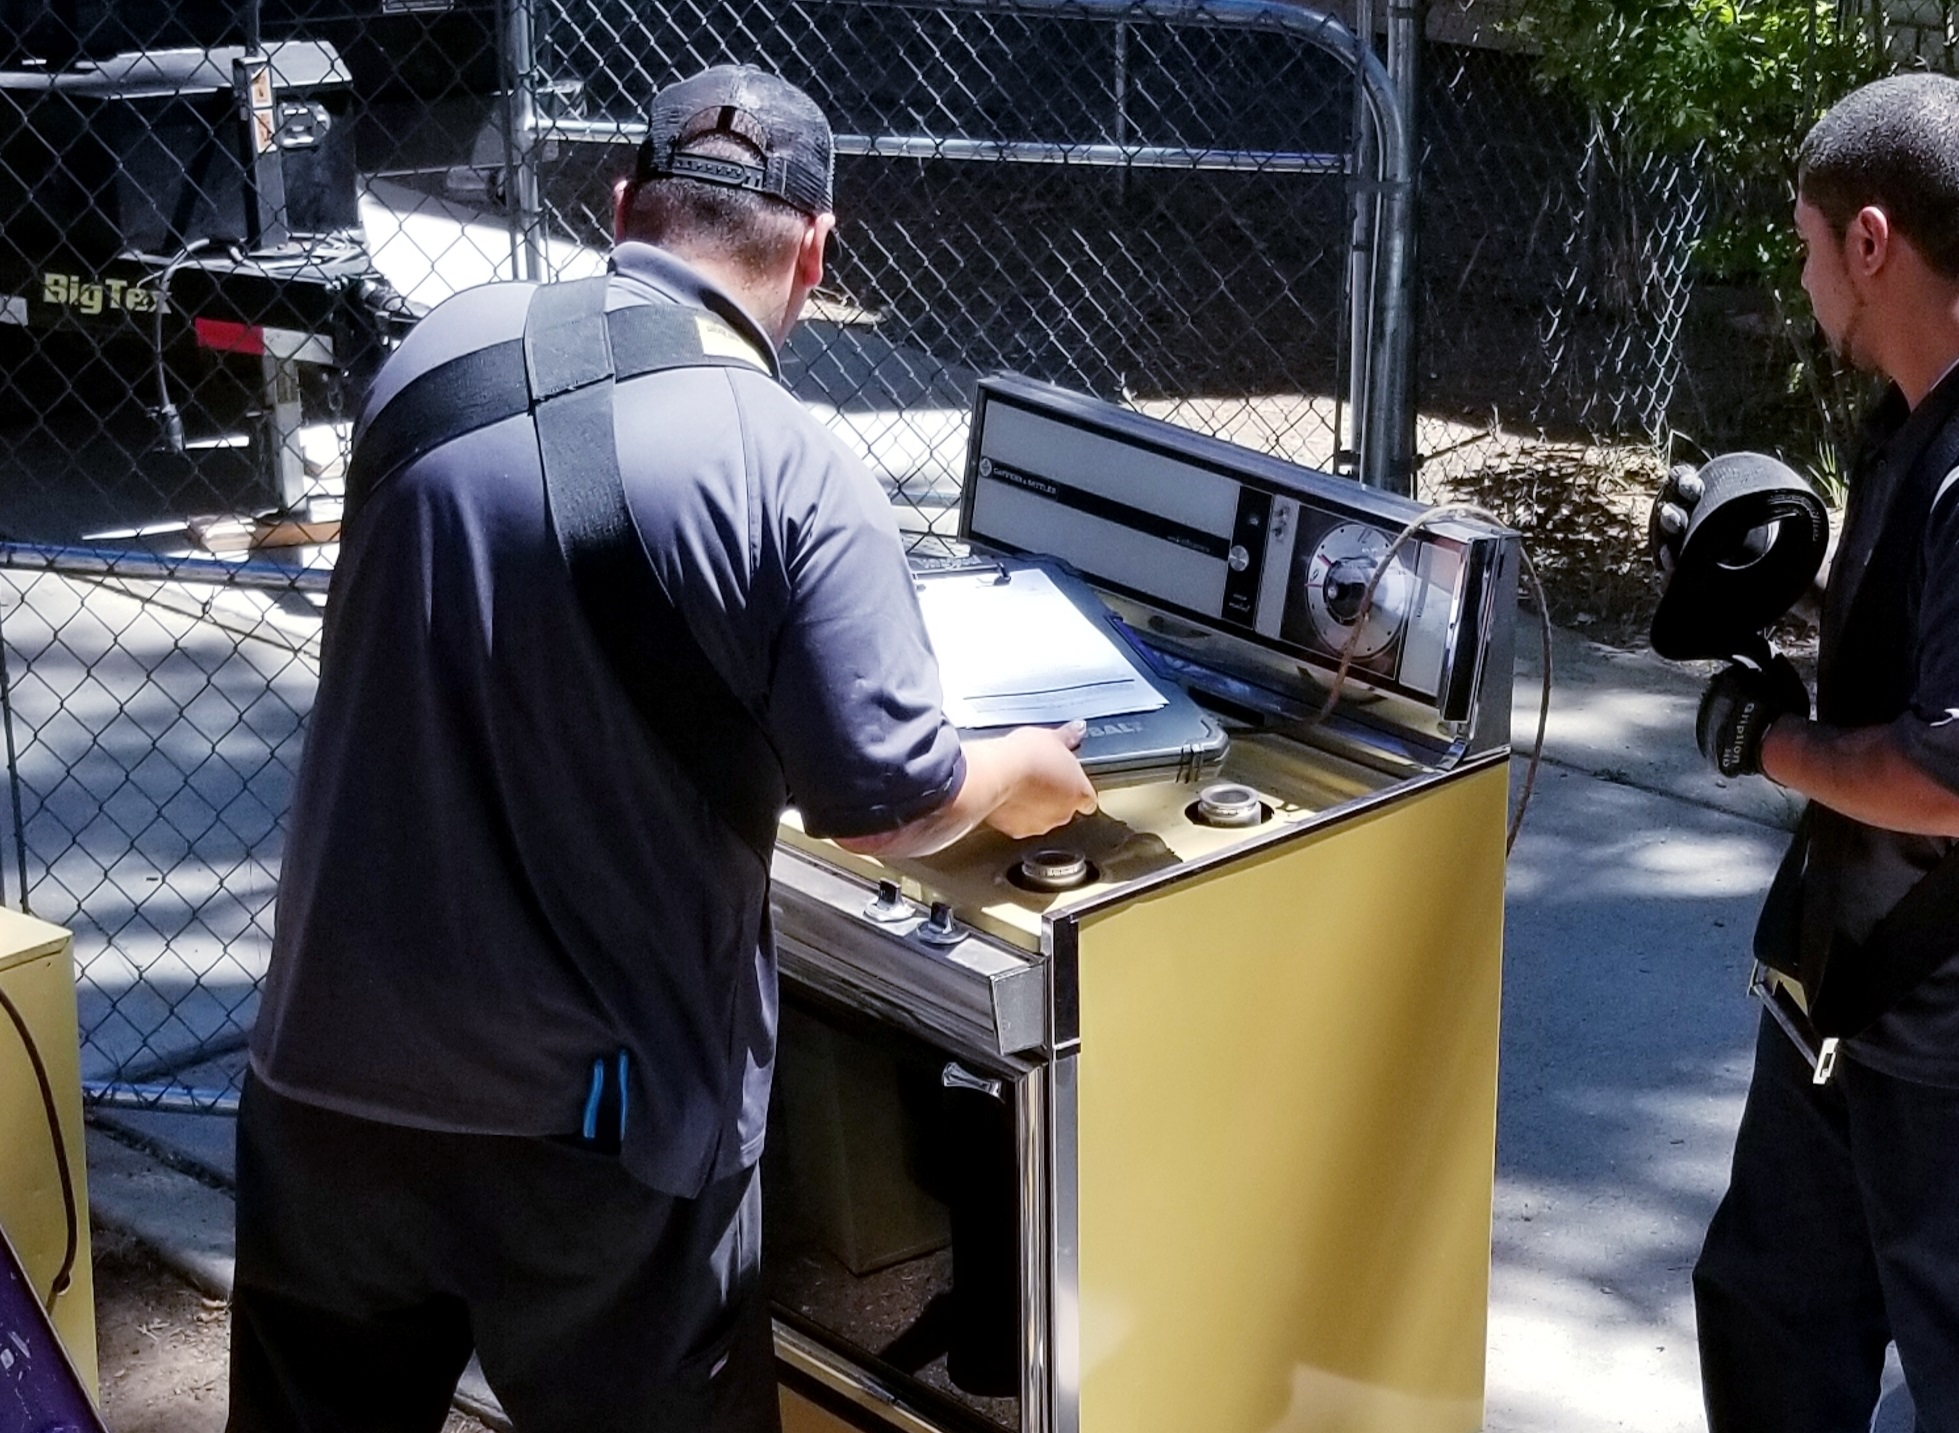 second hand appliances-used items